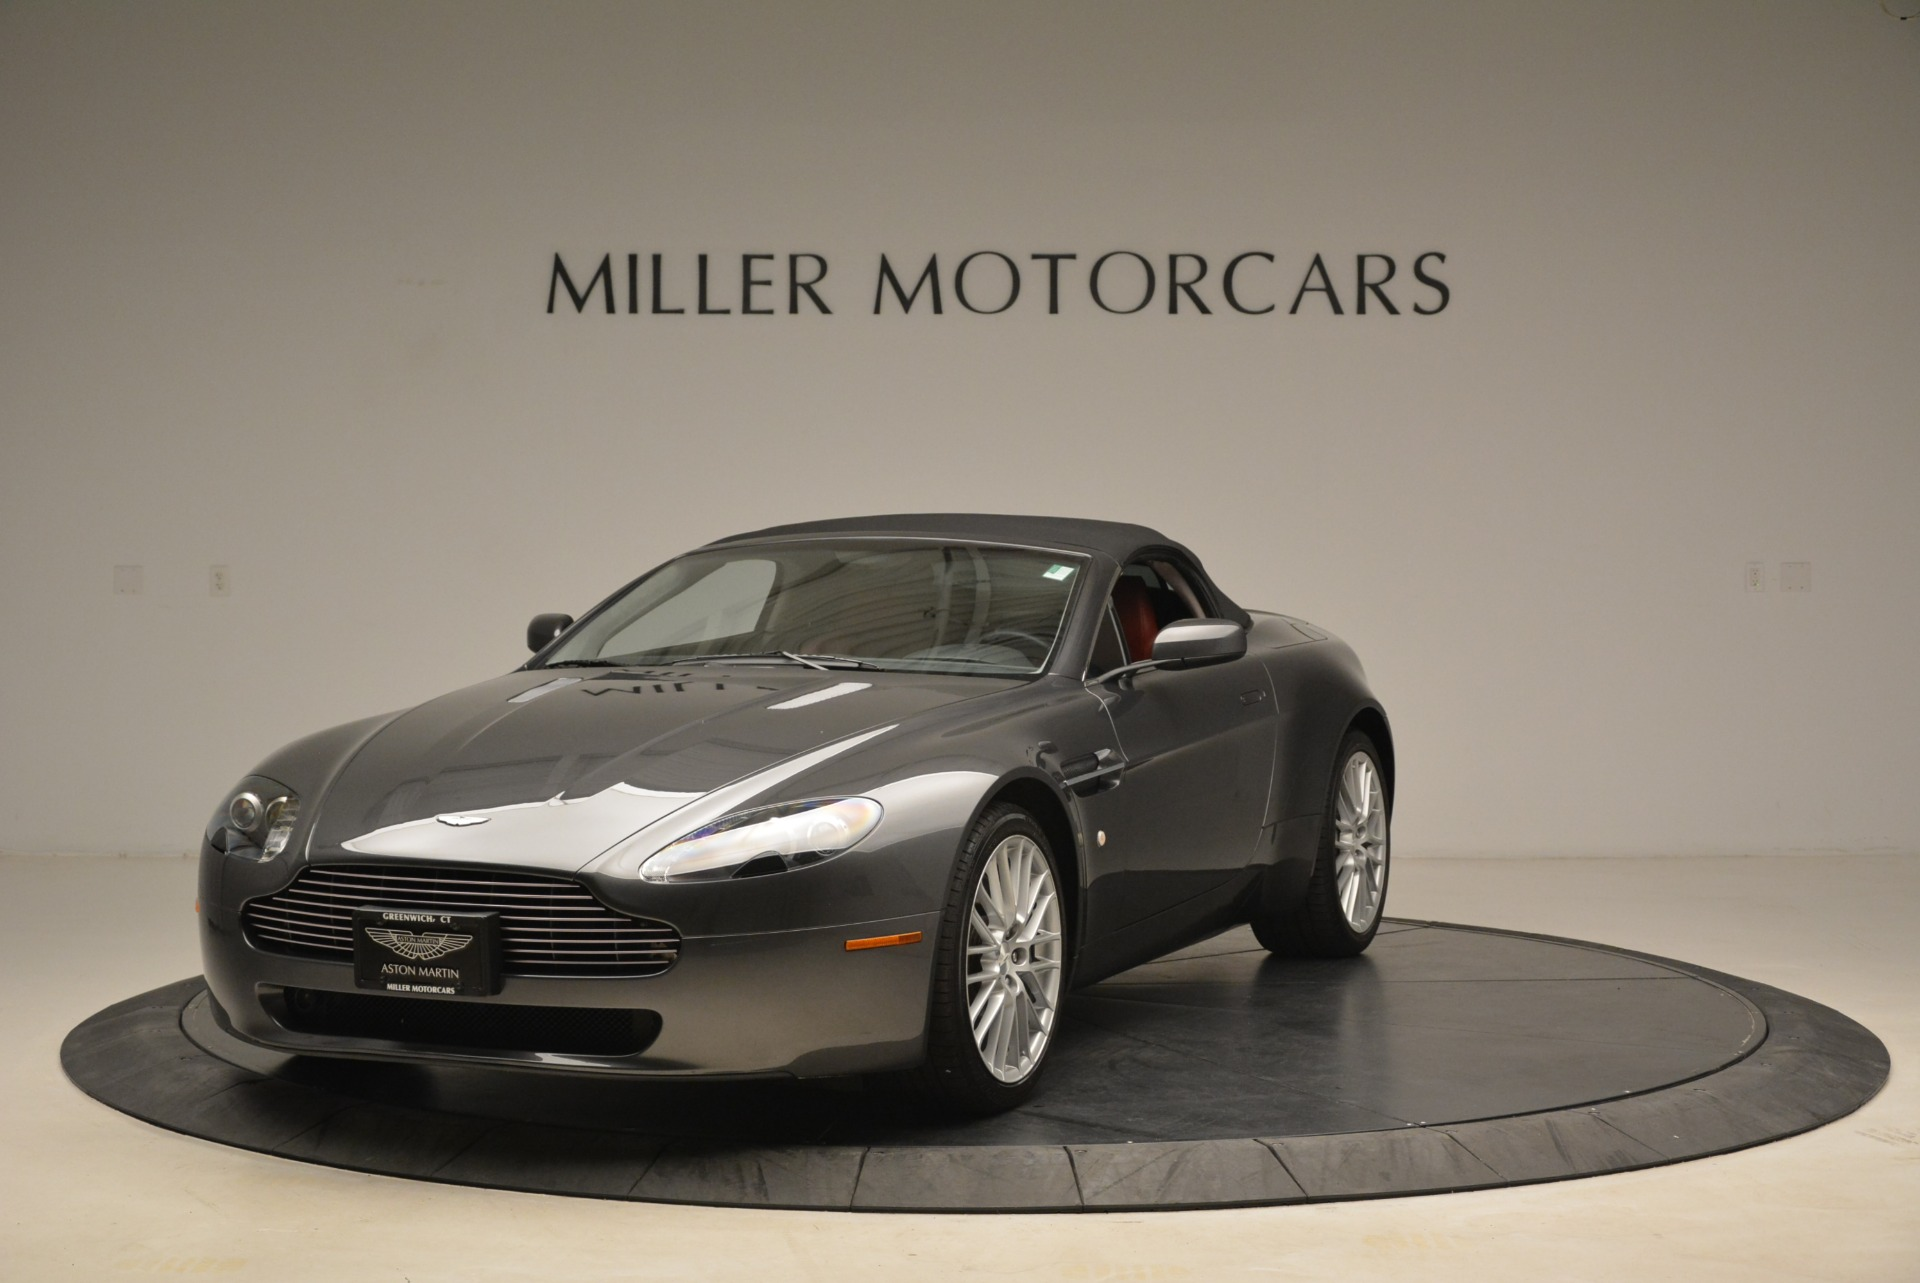 Used 2009 Aston Martin V8 Vantage Roadster For Sale In Greenwich, CT. Alfa Romeo of Greenwich, 7333 2123_p13